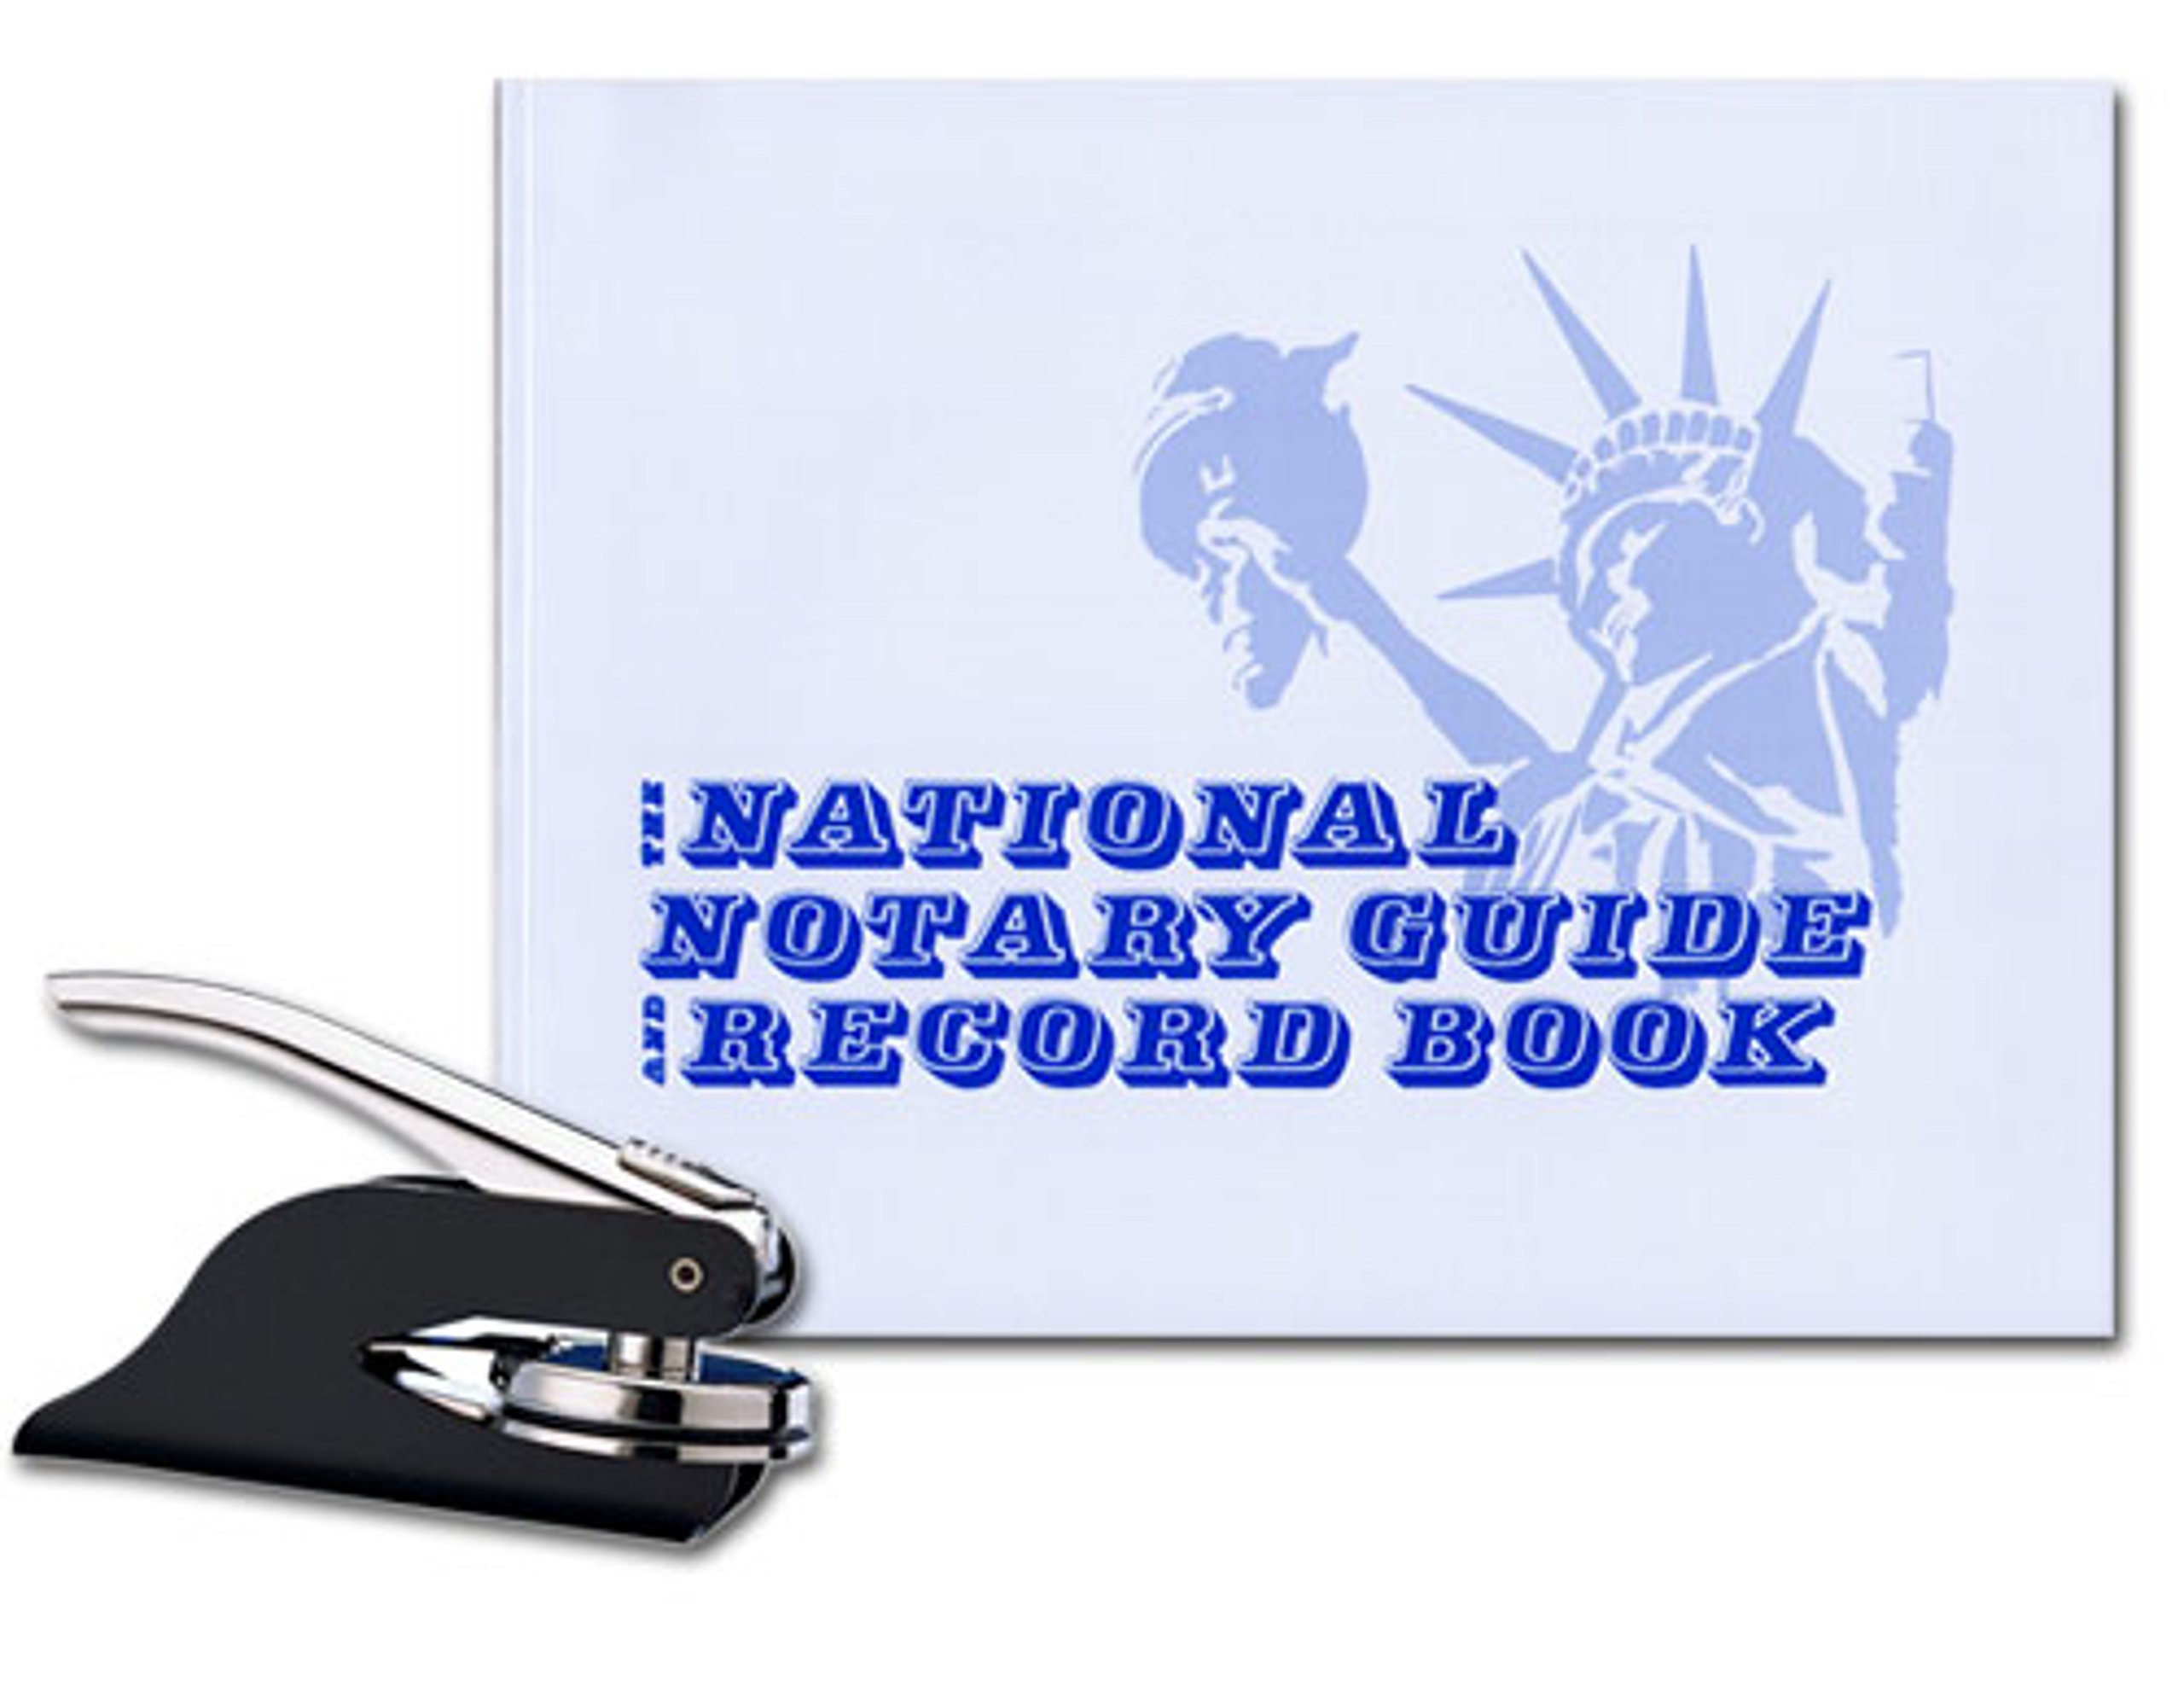 Black Pocket Seal Embosser; Notary Record Book Bundle | Massachusetts